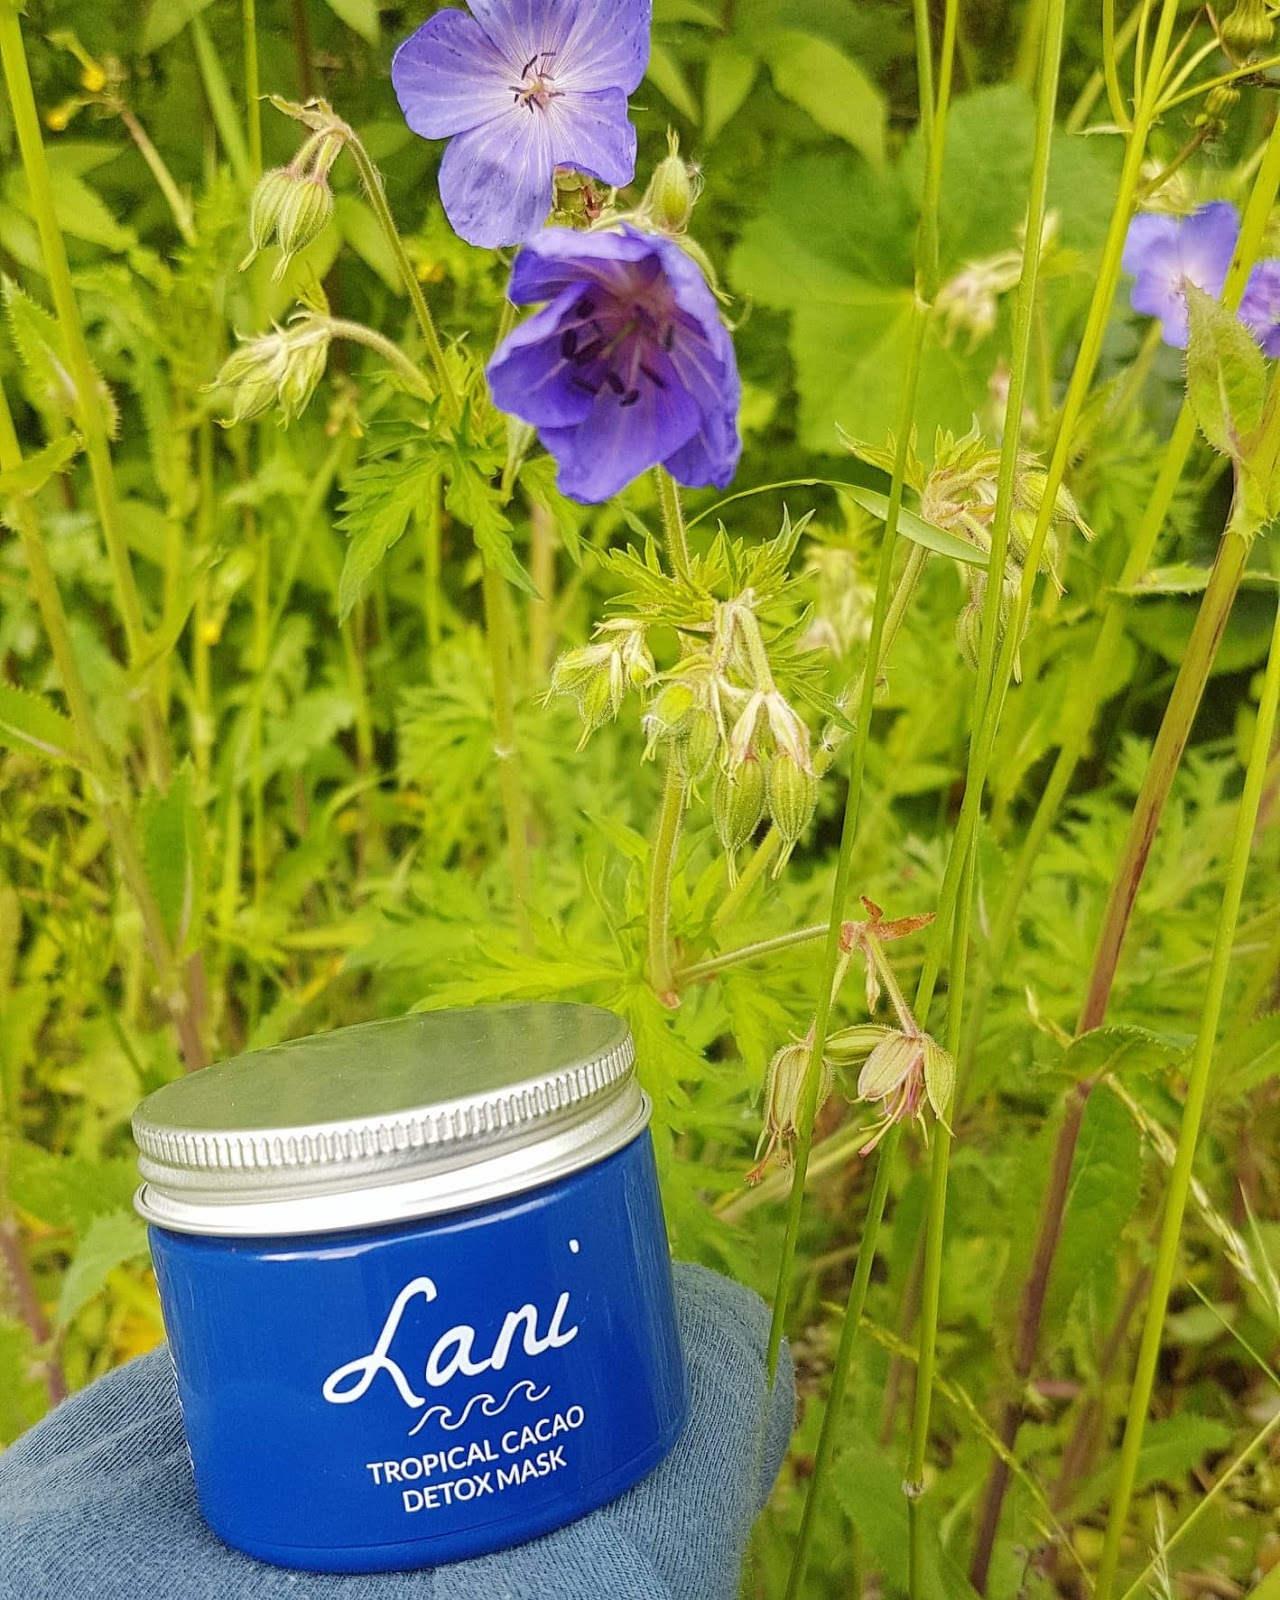 Lani Tropical Cacao Detox Mask Review